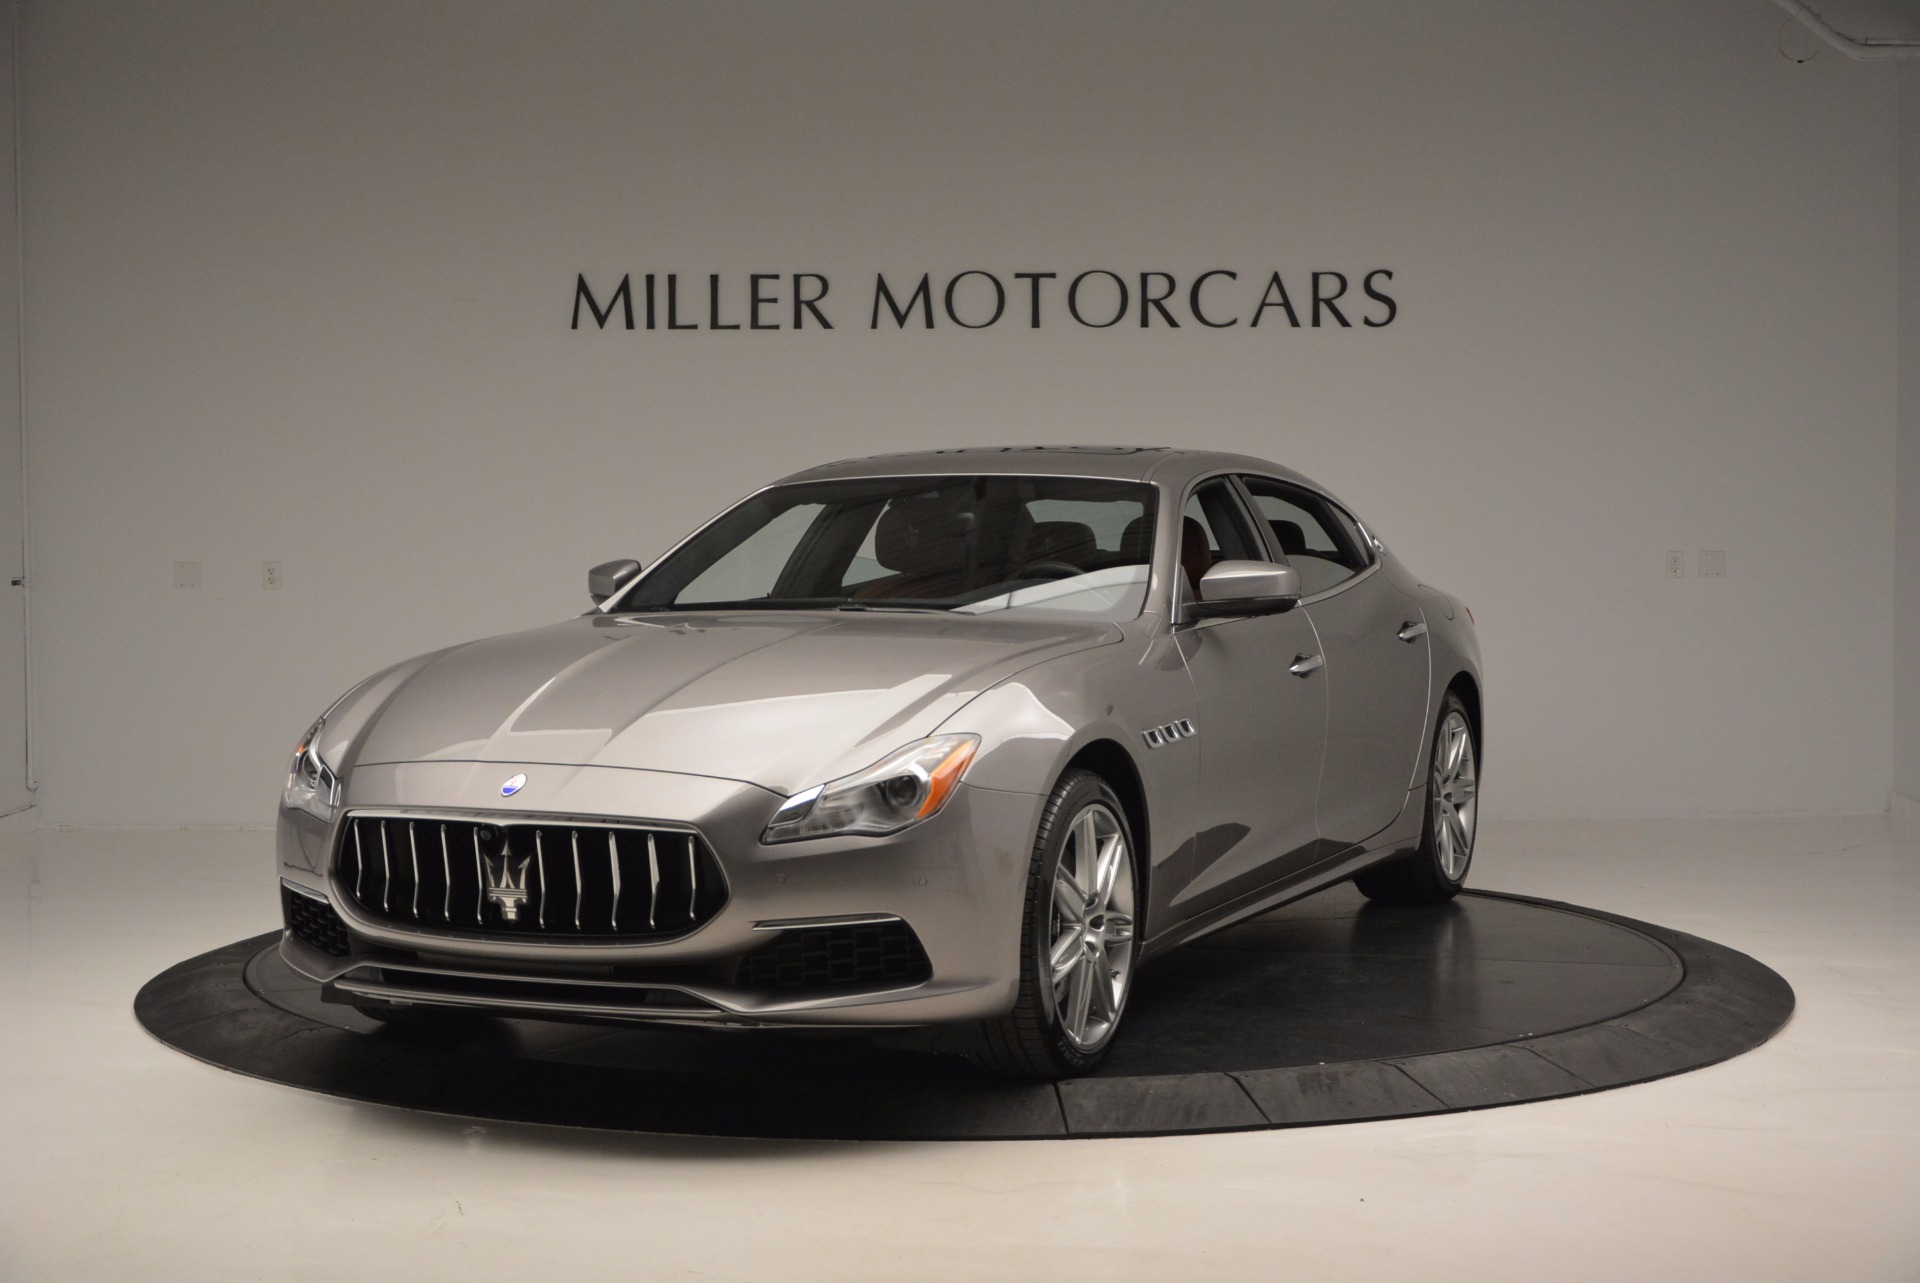 New 2017 Maserati Quattroporte S Q4 GranLusso For Sale In Greenwich, CT 1265_main